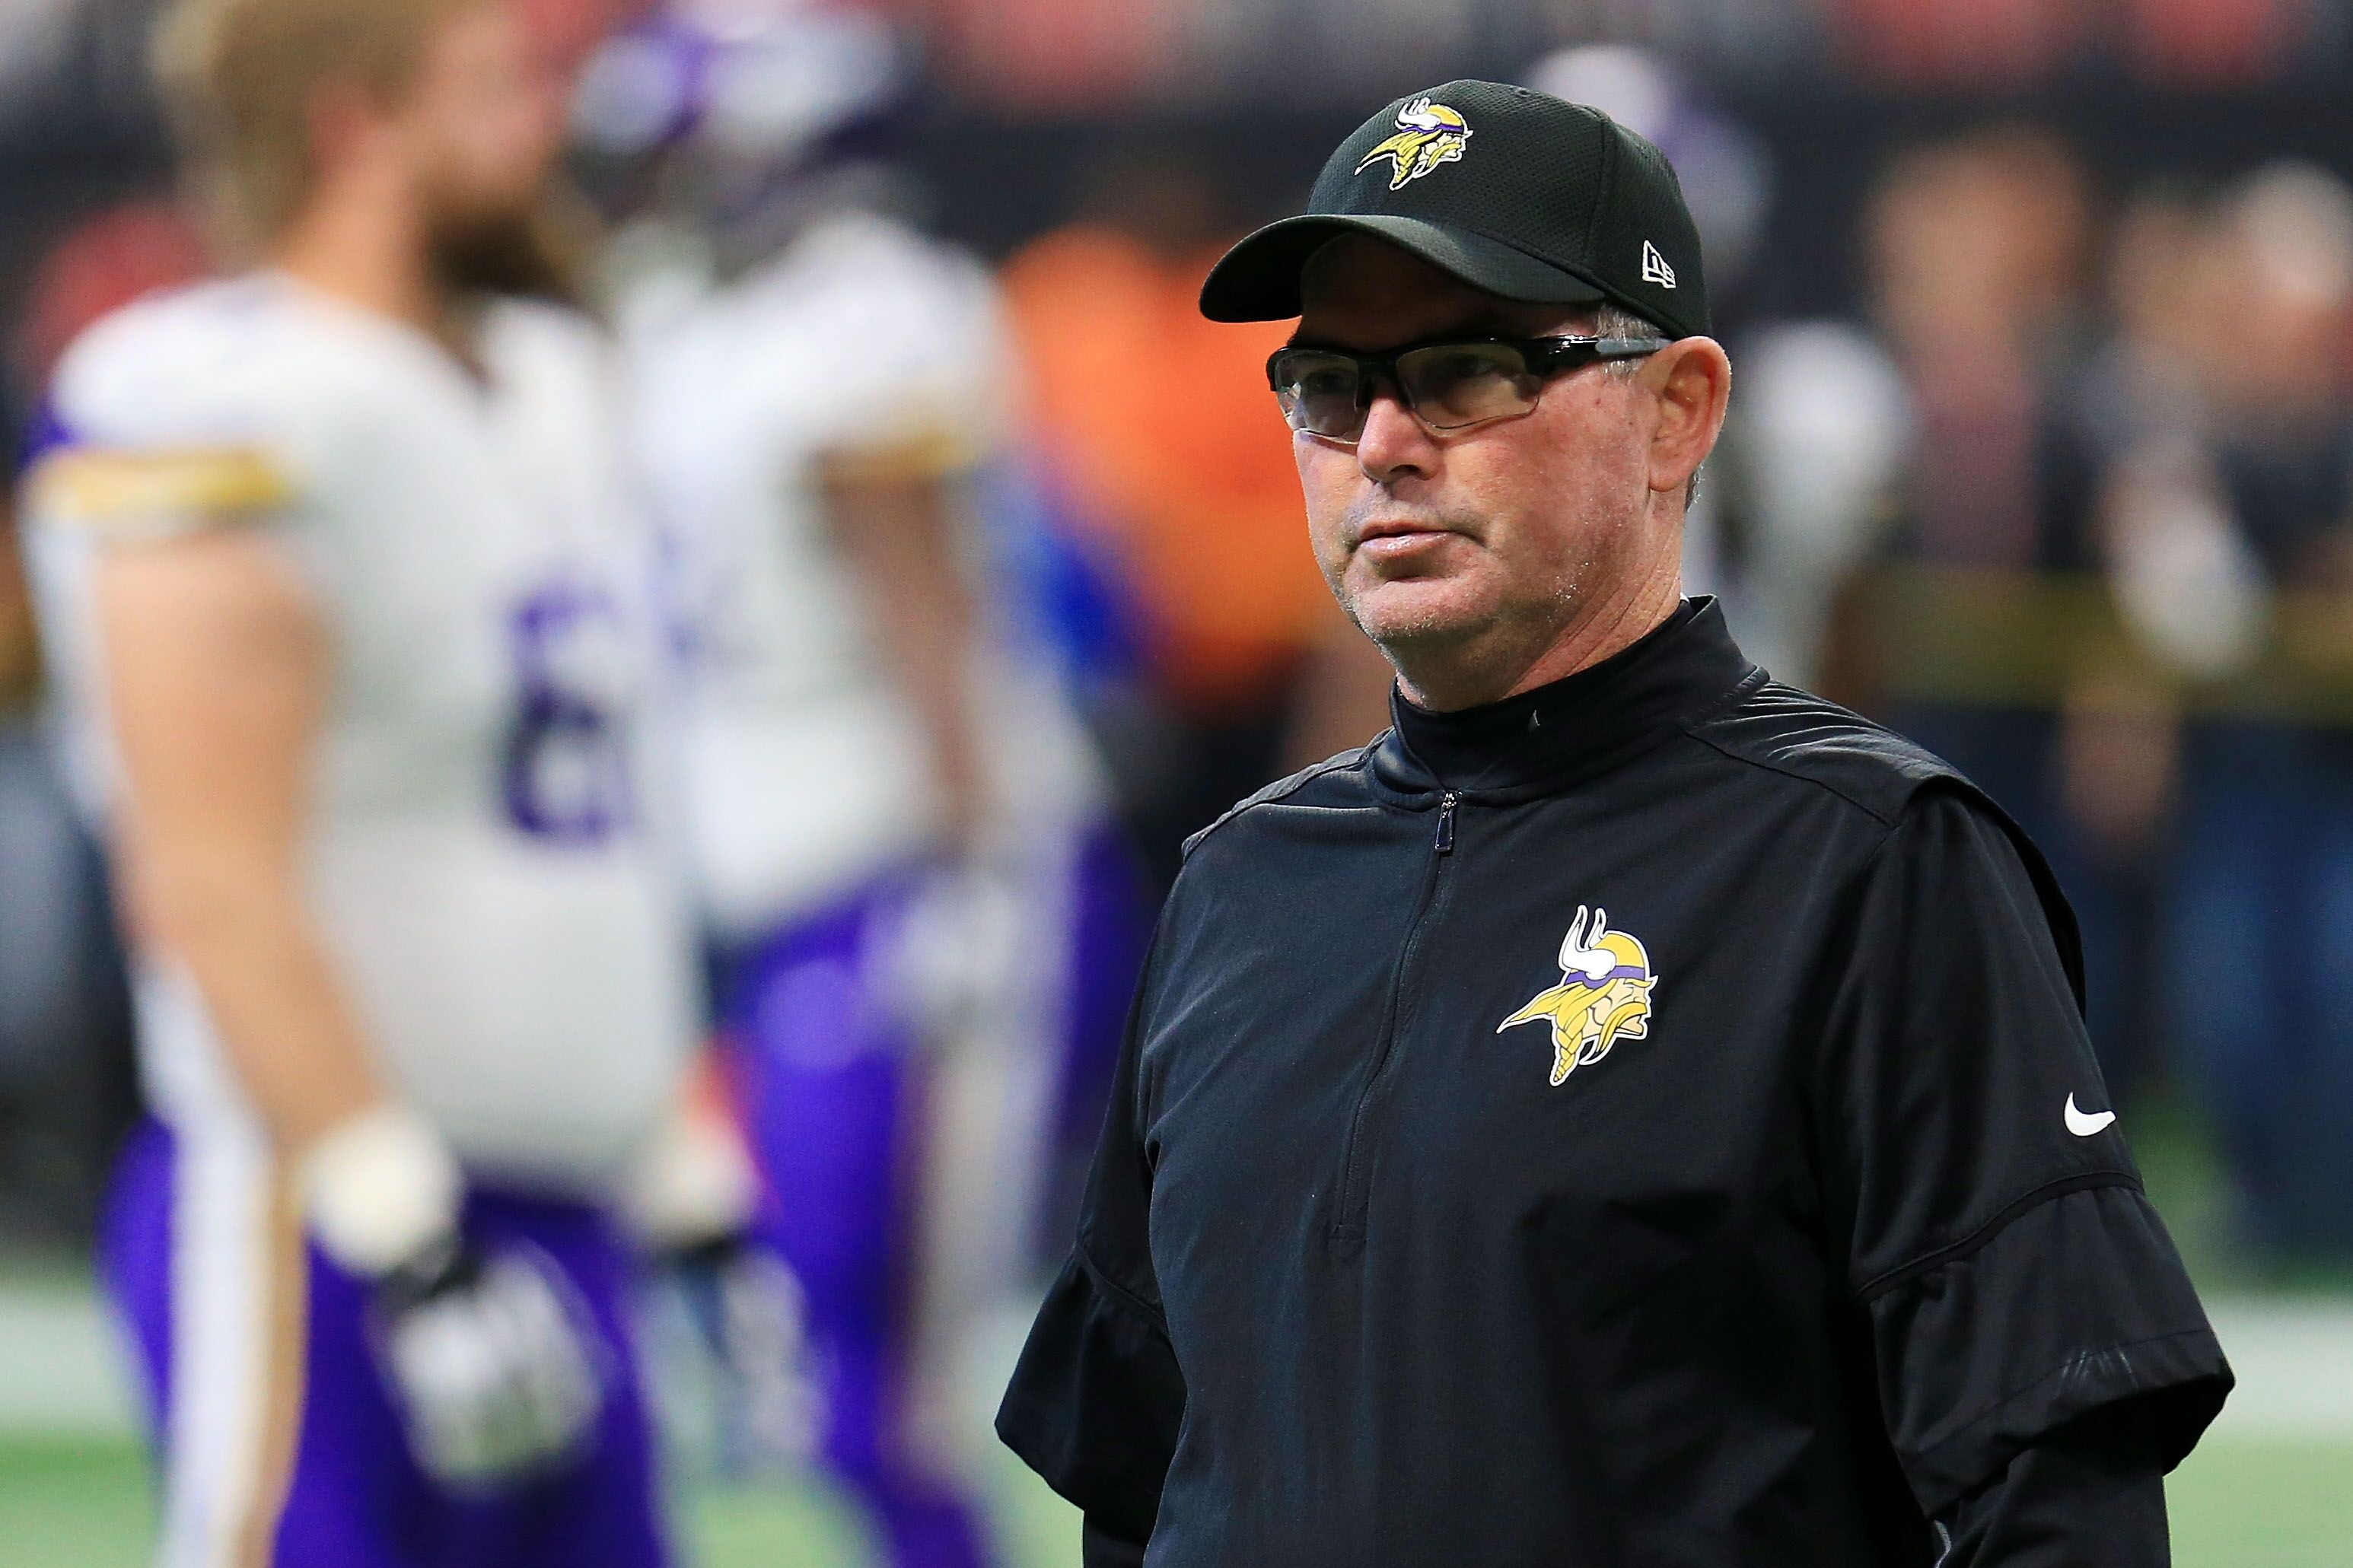 Vikings and Jaguars find success with old school methods